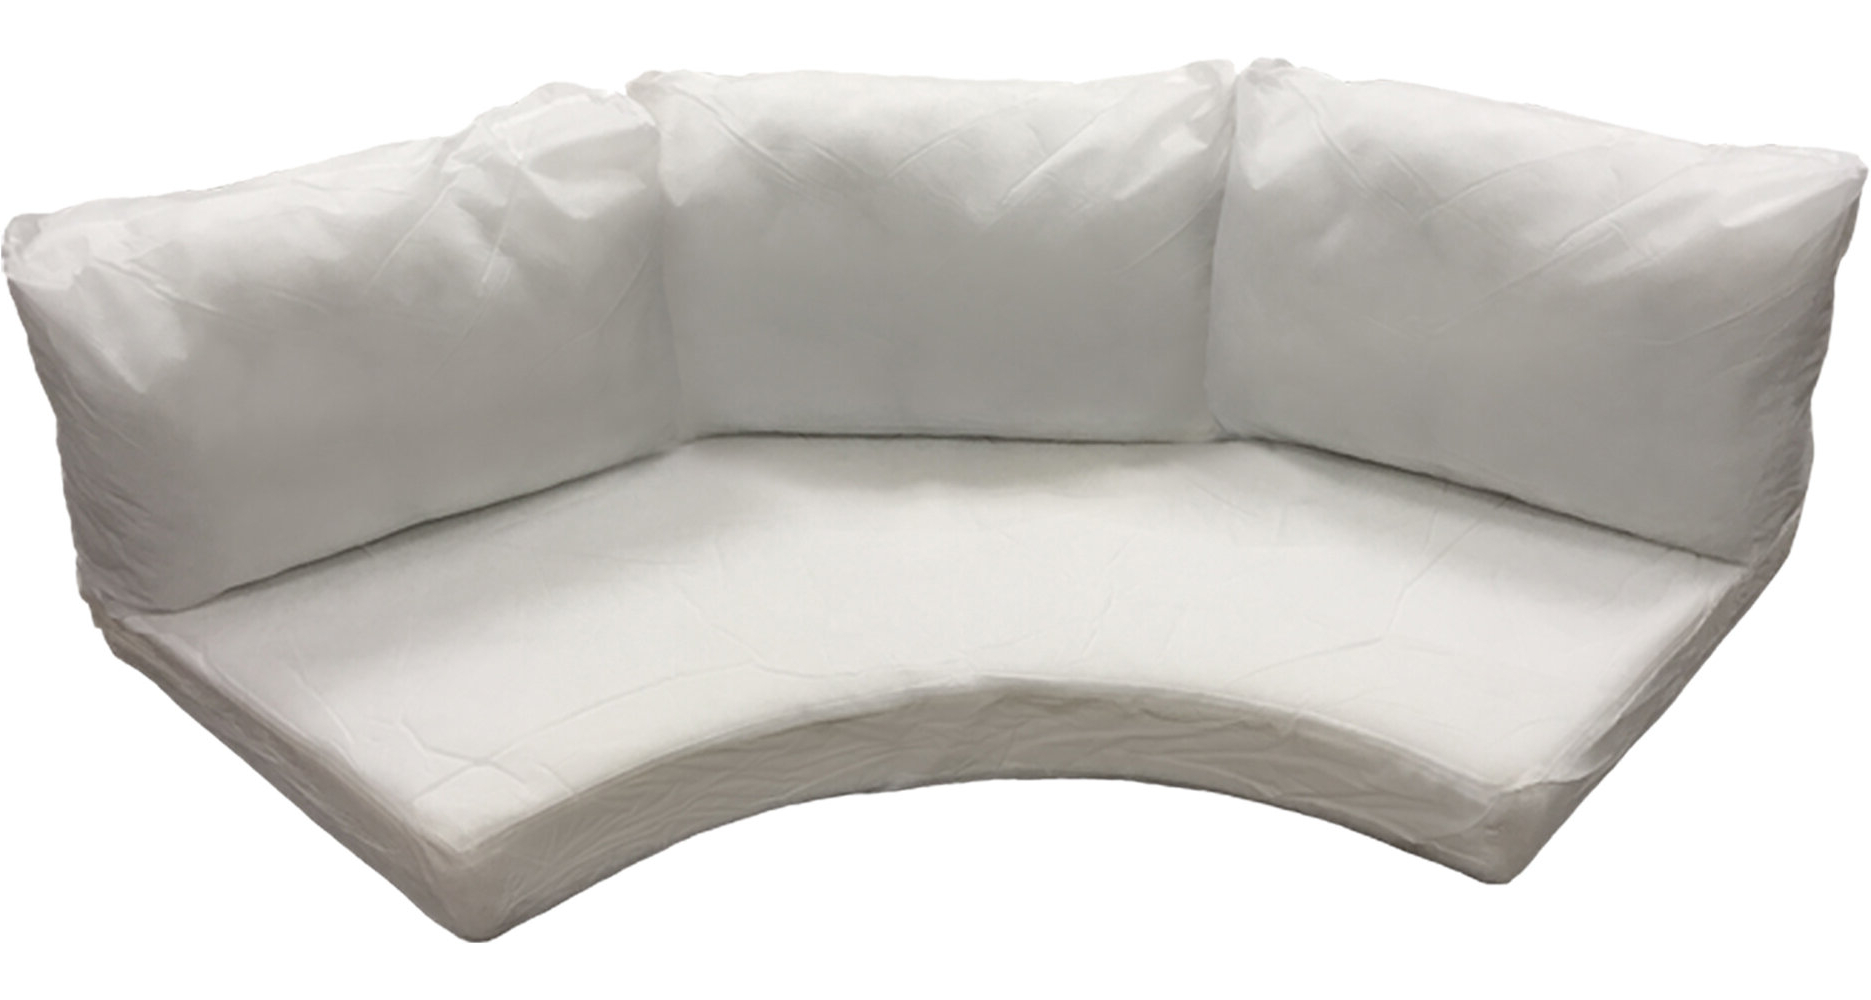 Waterbury Outdoor 8 Piece Curved Armless Cushion Set Inside Latest Waterbury Curved Armless Sofa With Cushions (View 16 of 20)